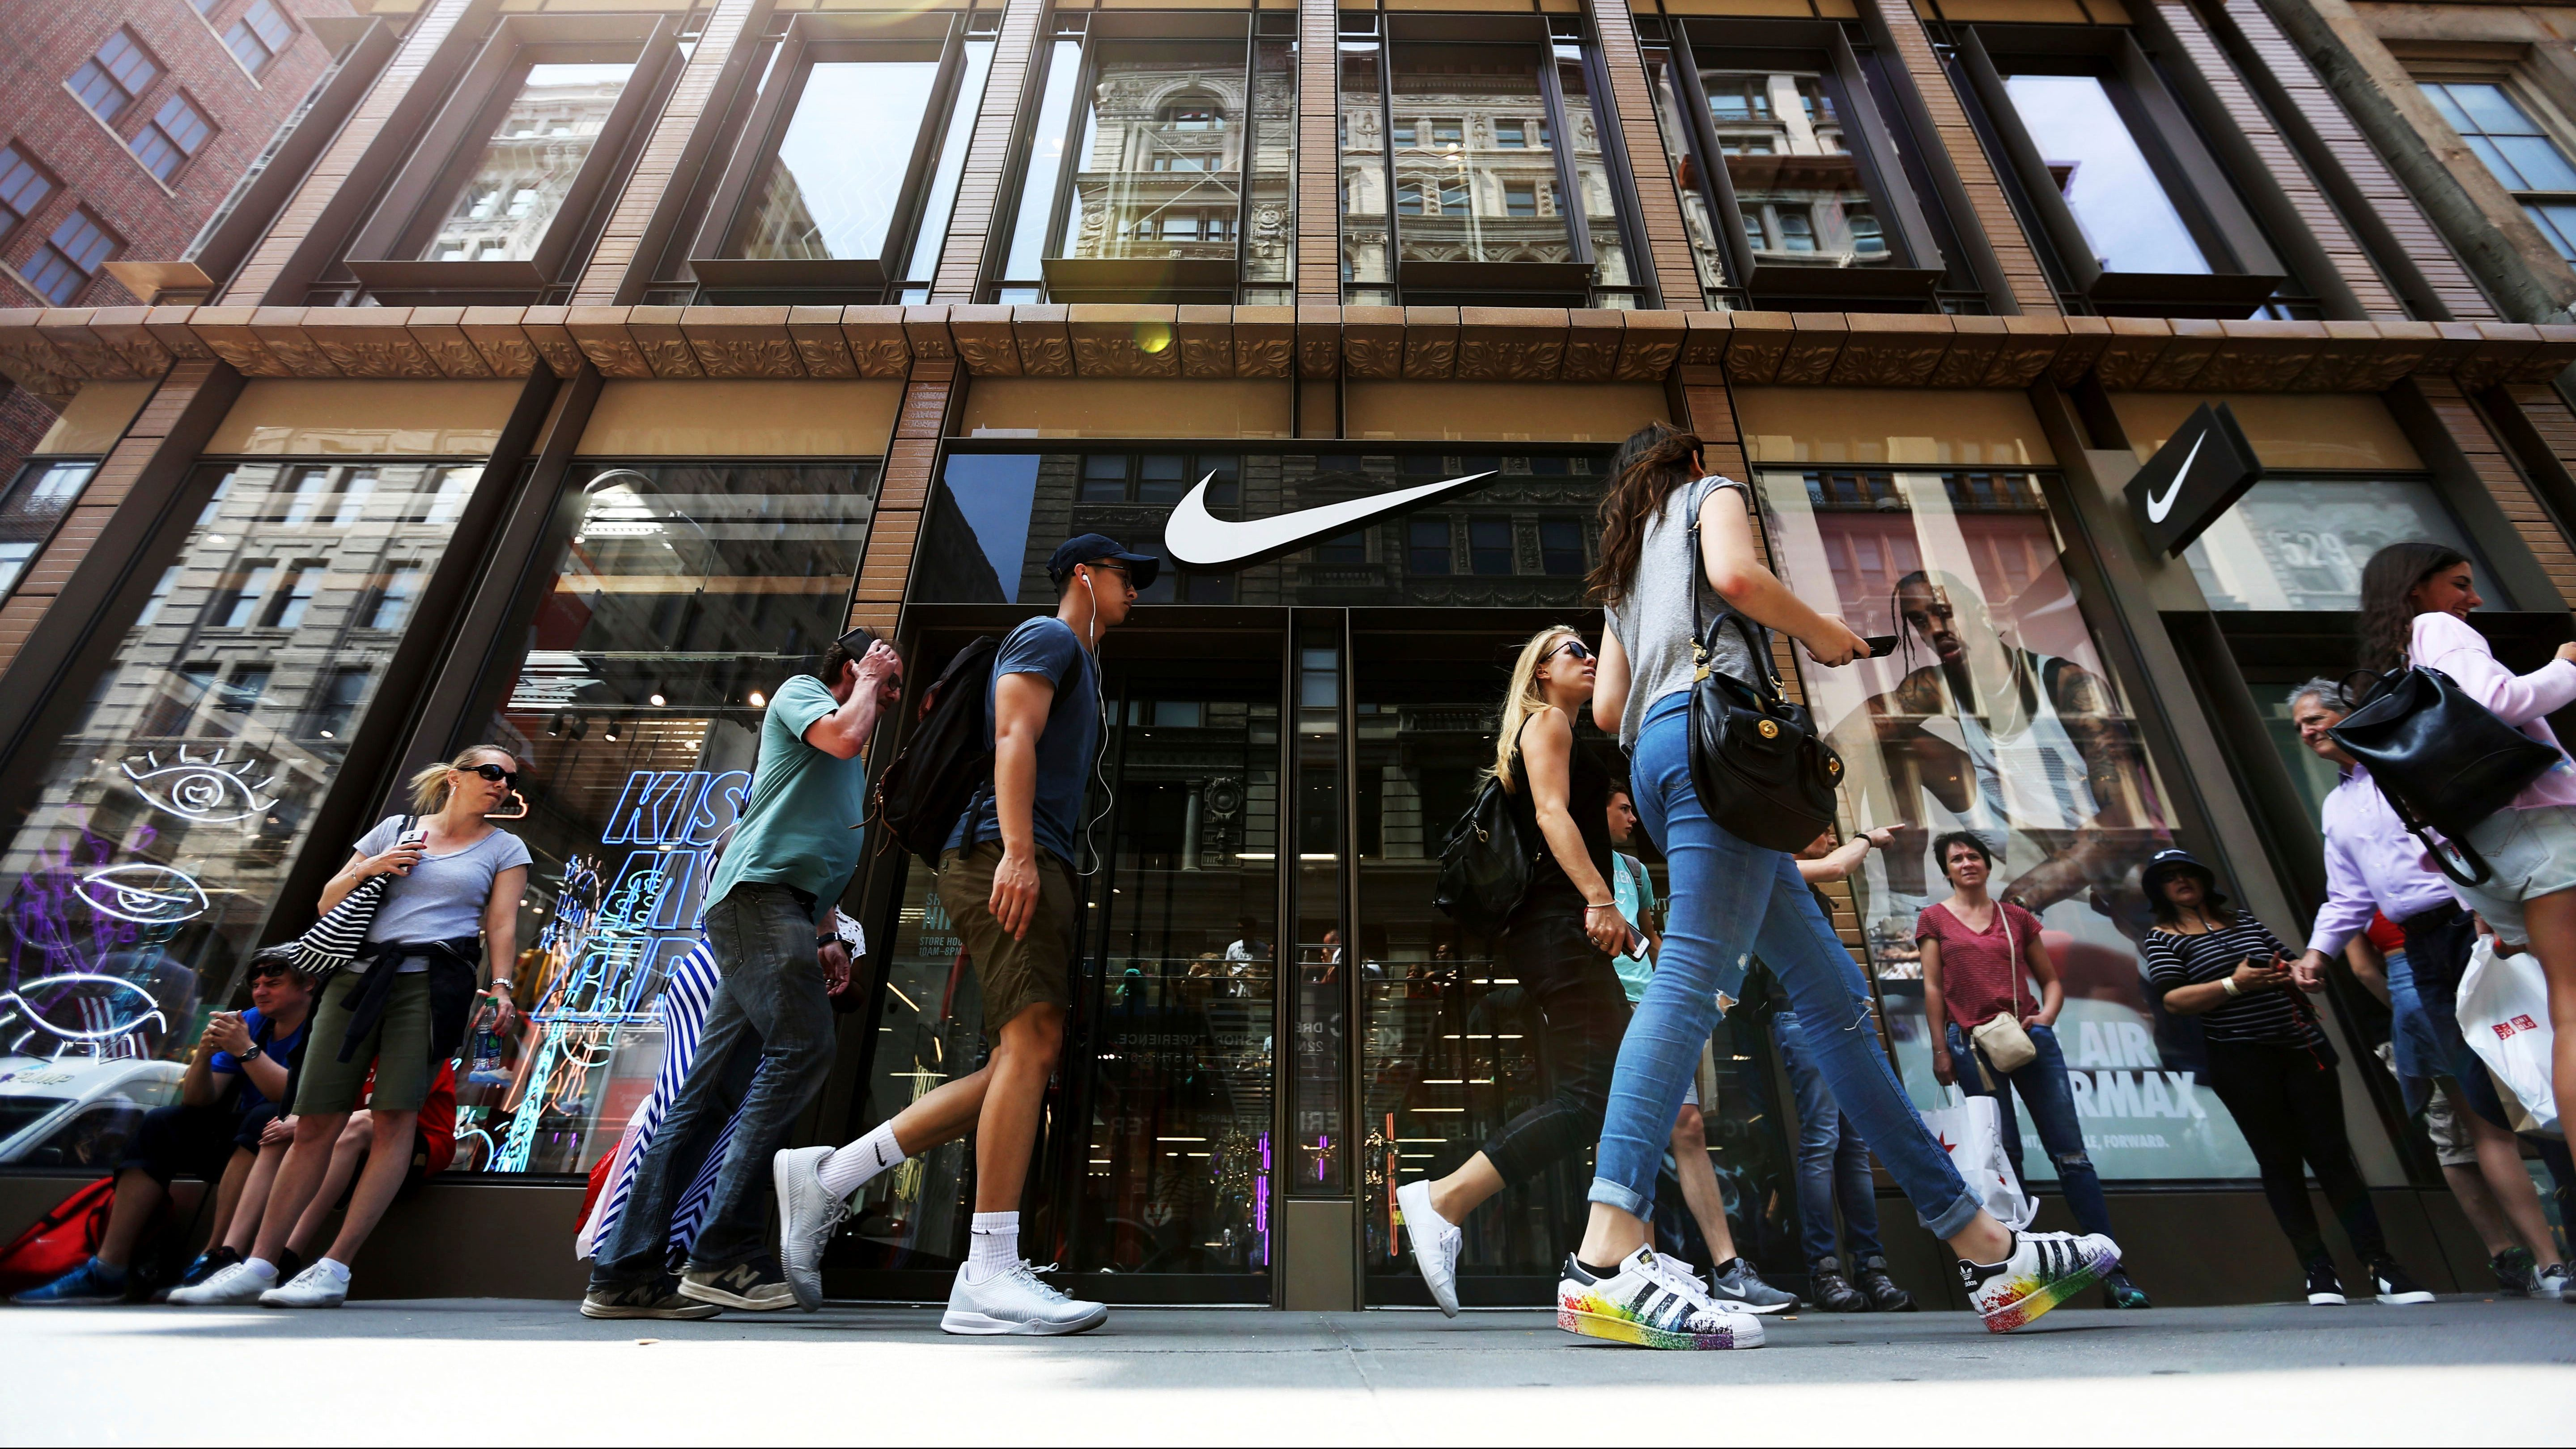 Nike Is Losing Pority To Adidas And Vans Among Teens Survey Finds Quartzy